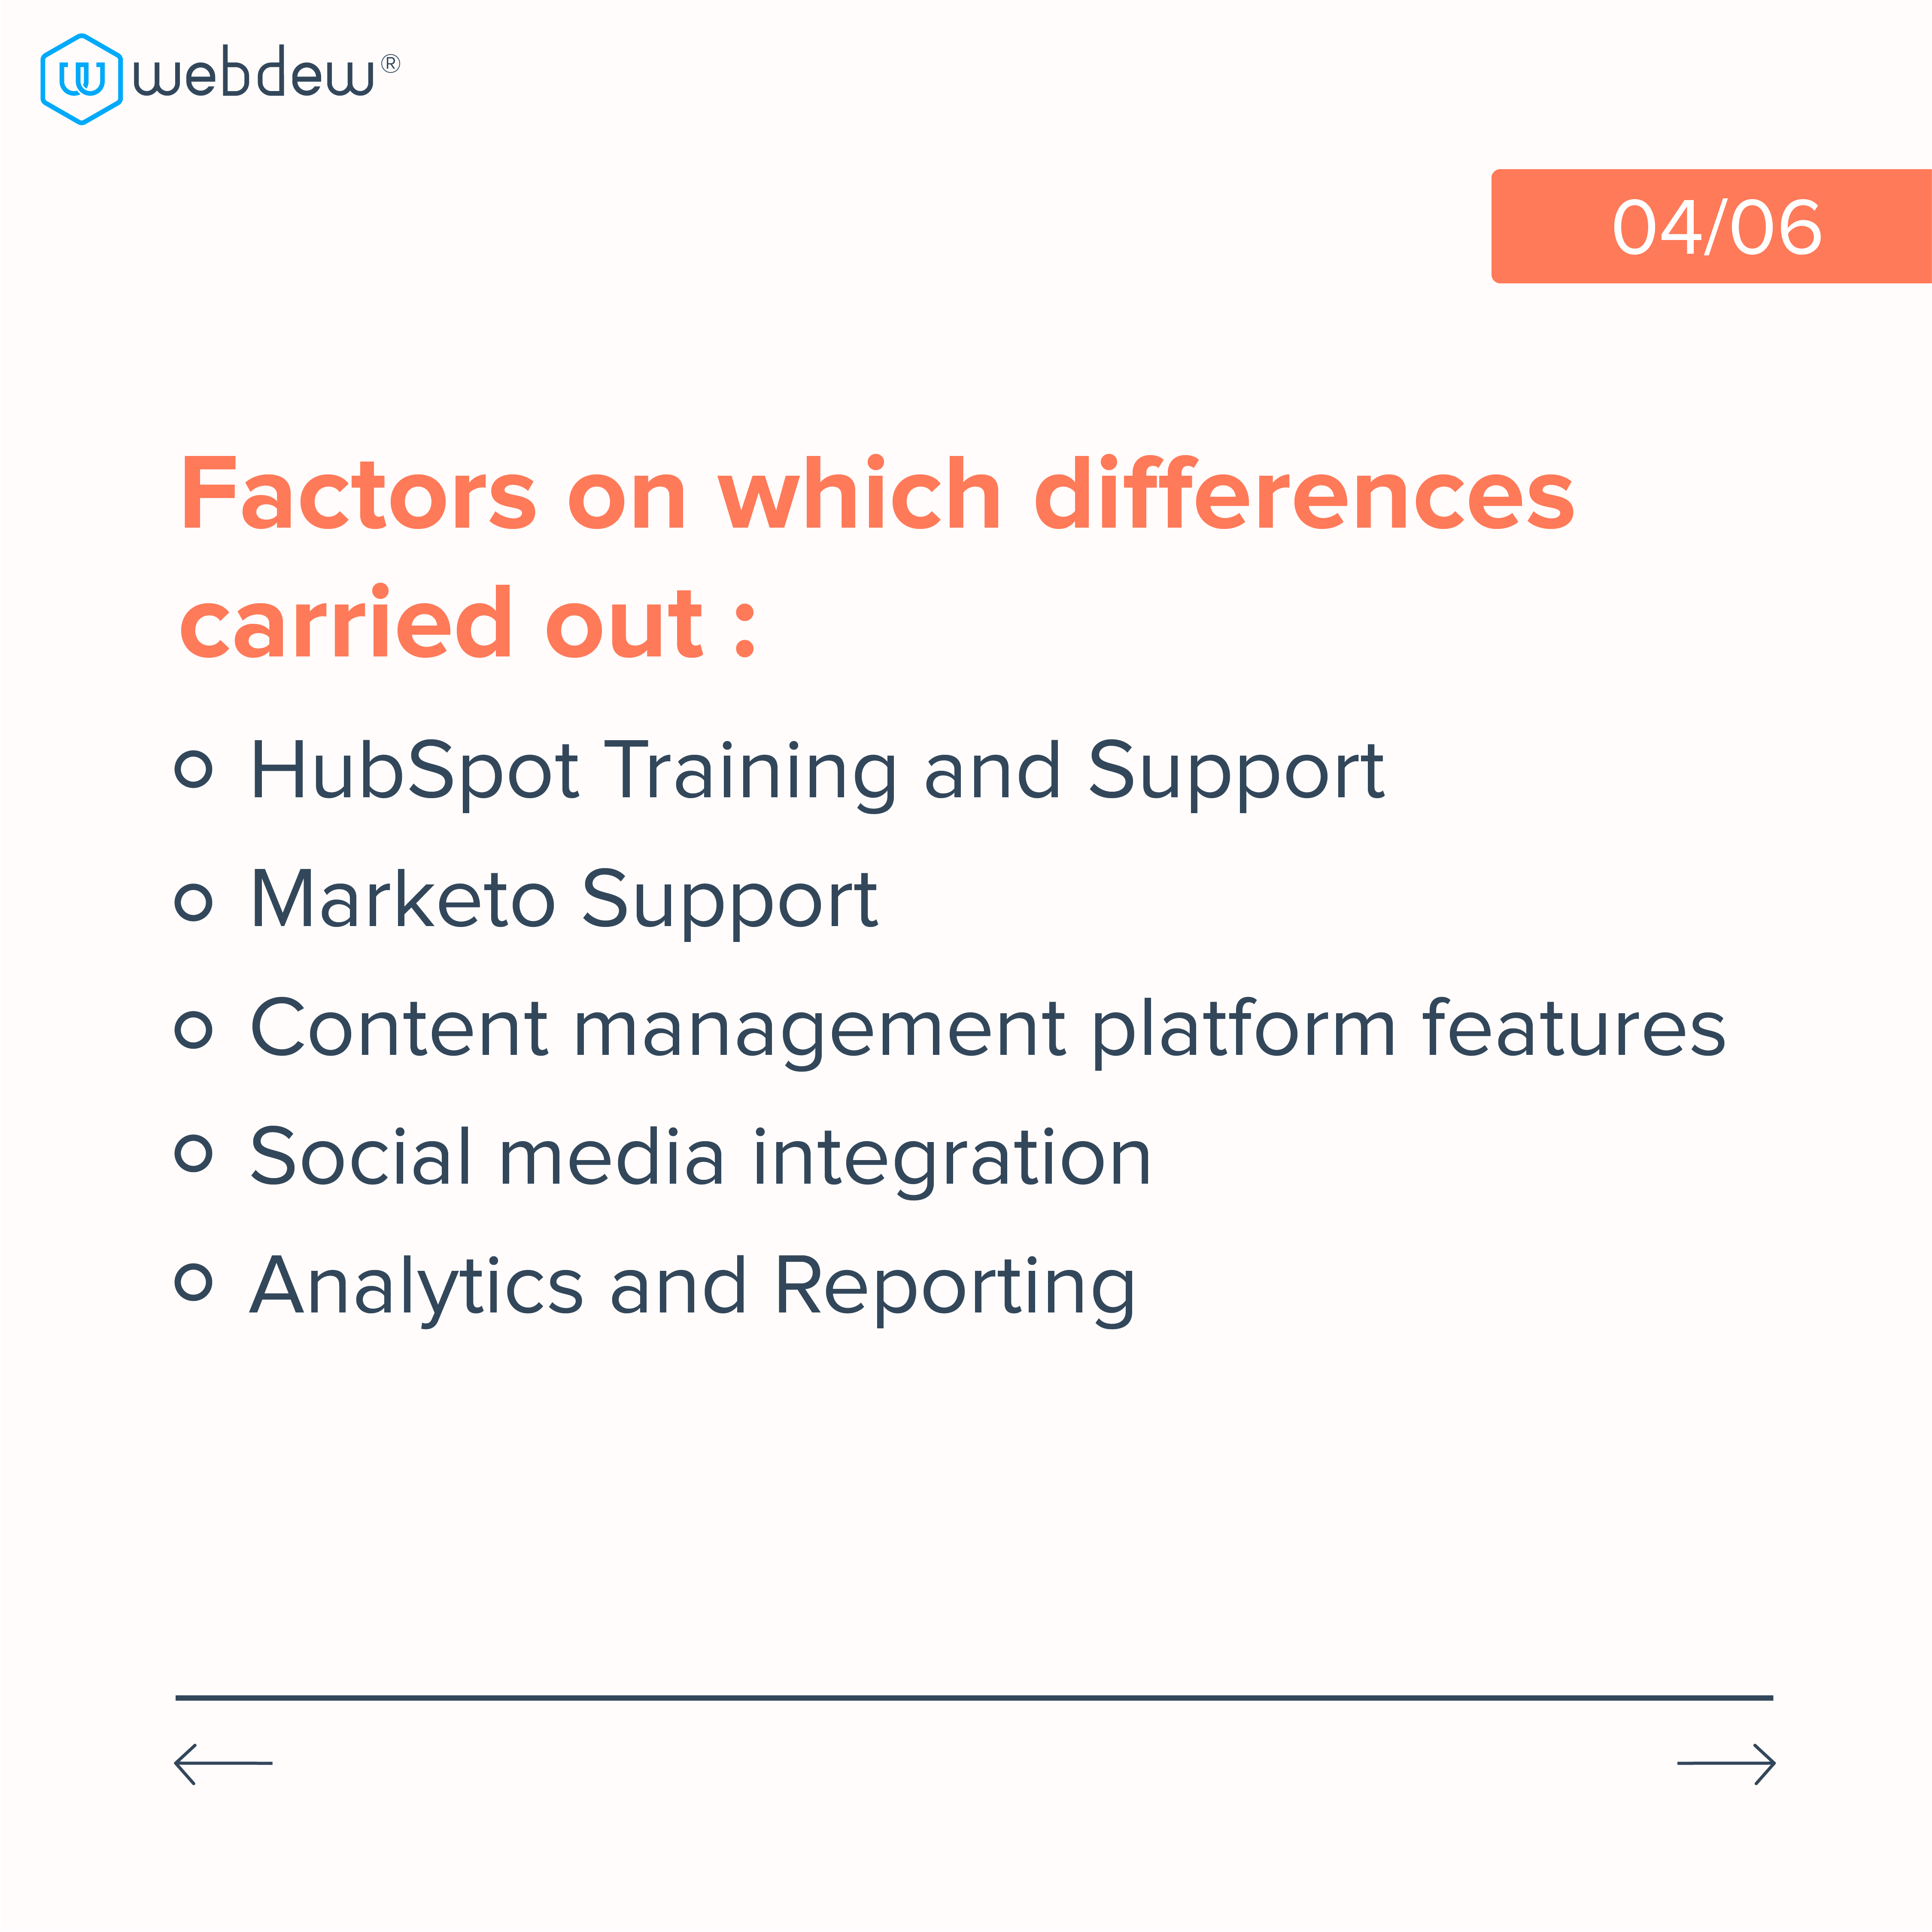 4. factors on which differences carried out